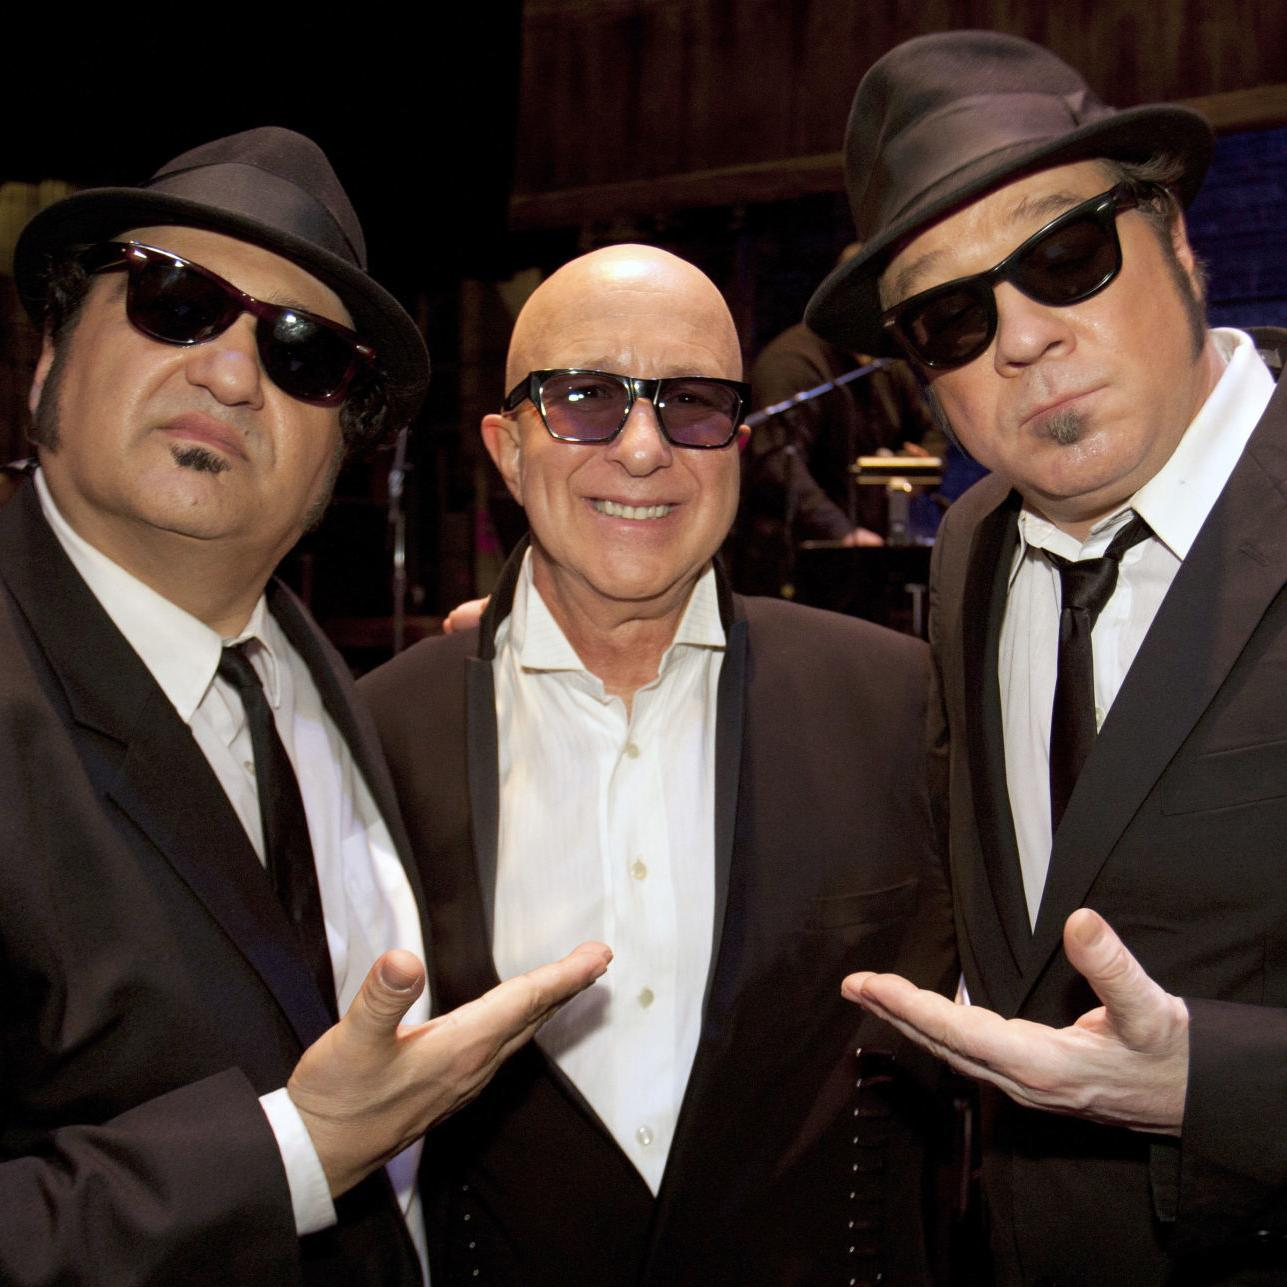 The Official Blues Brothers Revue, Friday, March 22, 7:30